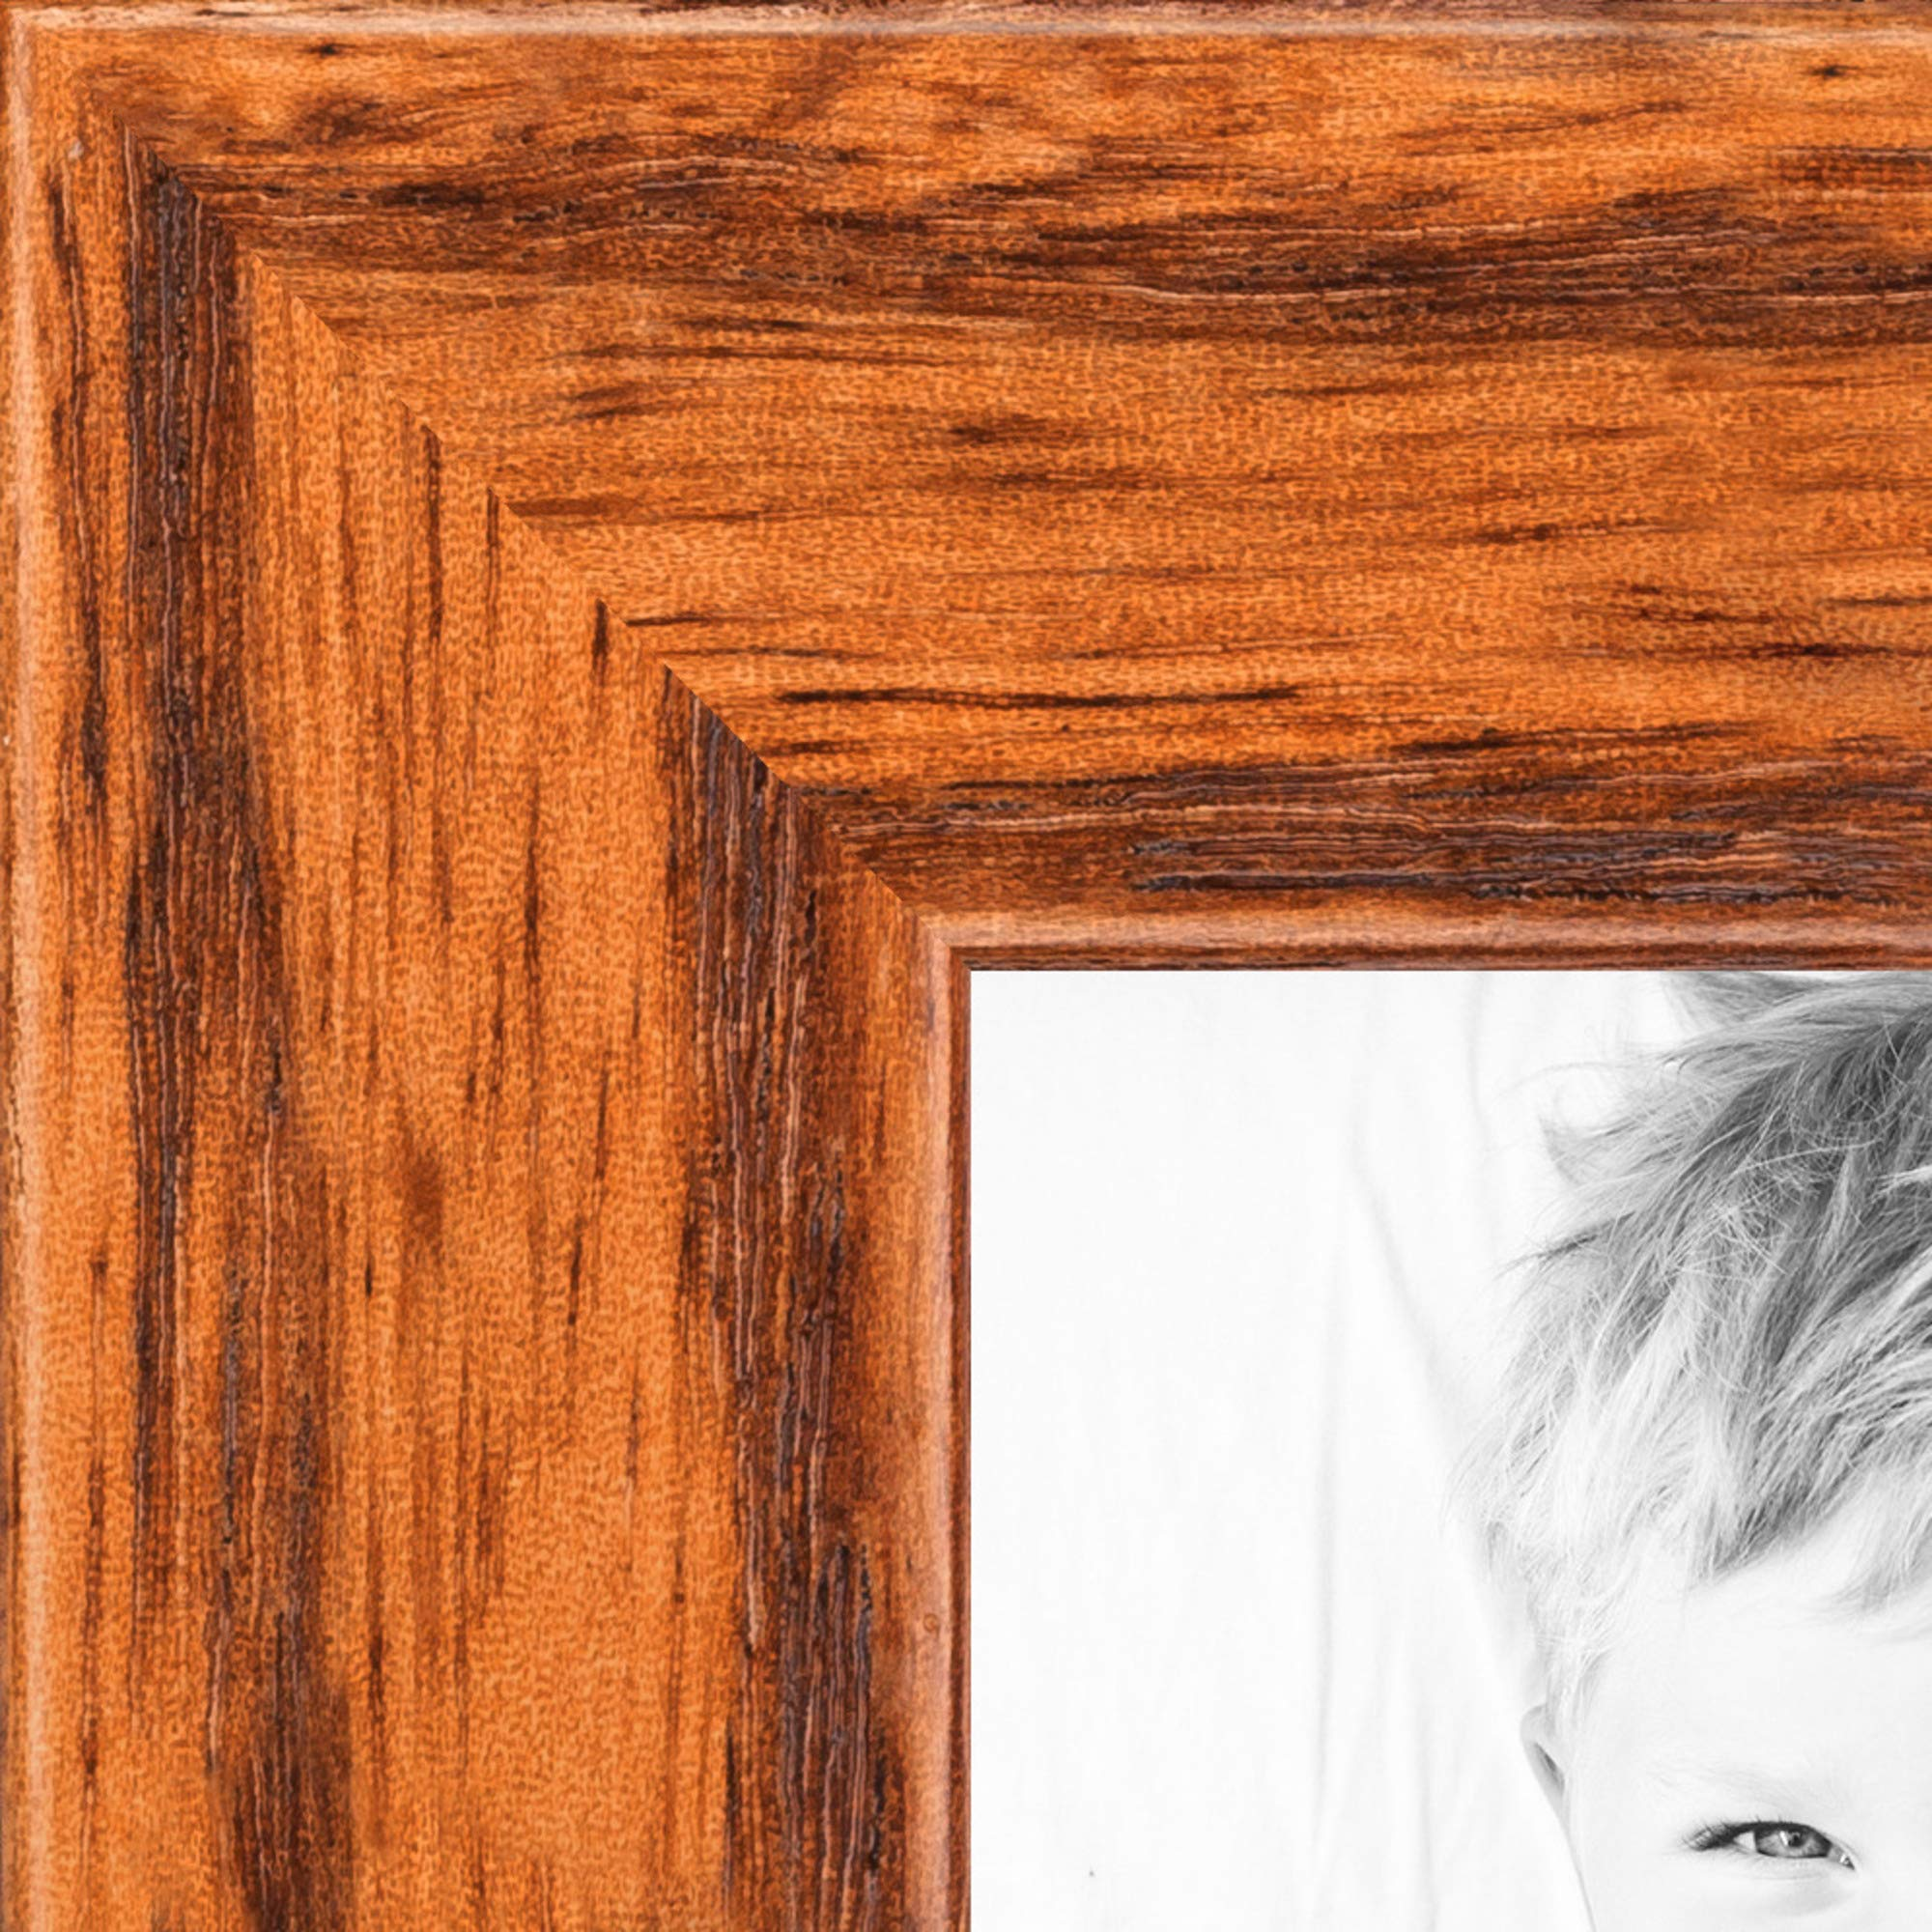 ArtToFrames 5x6 inch Honey on Red Oak Wood Picture Frame, 2WOM0066-1343-YHNY-5x6